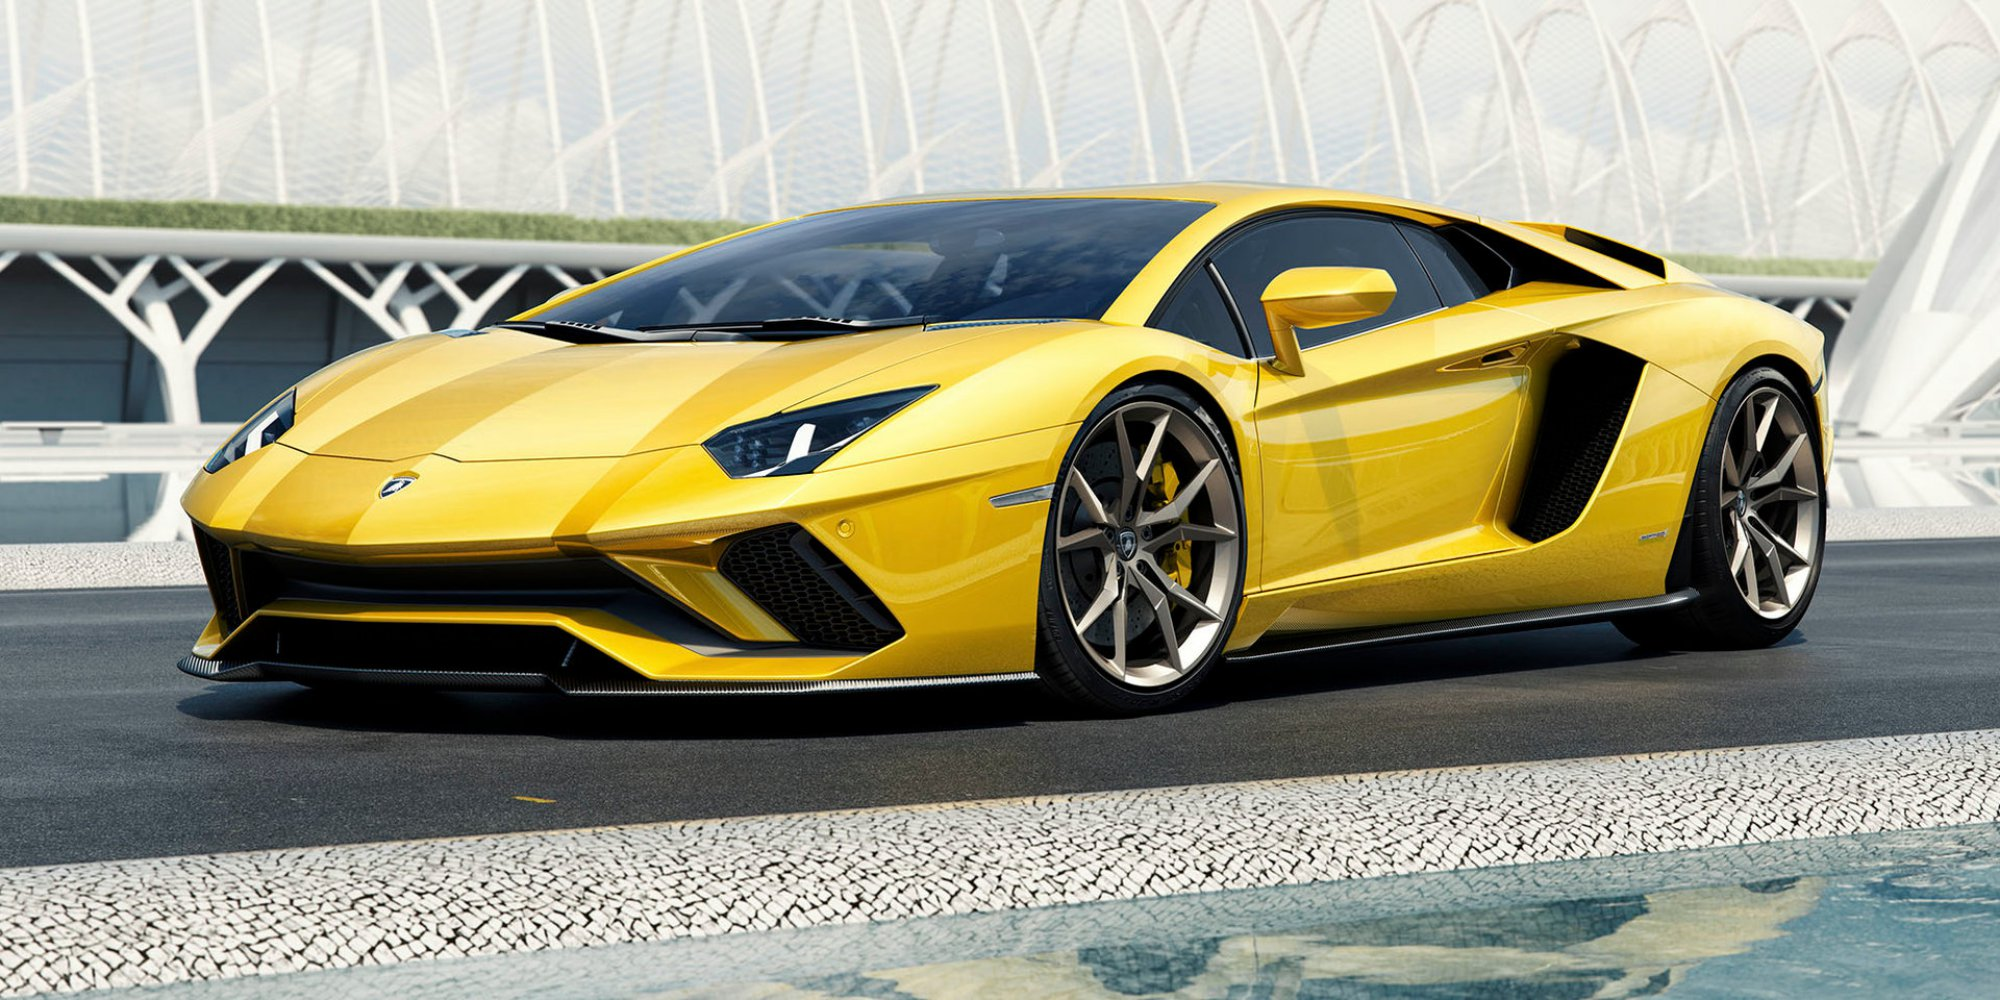 News - Lamborghini Unveils 2017 Aventador S, Oz Prices ...